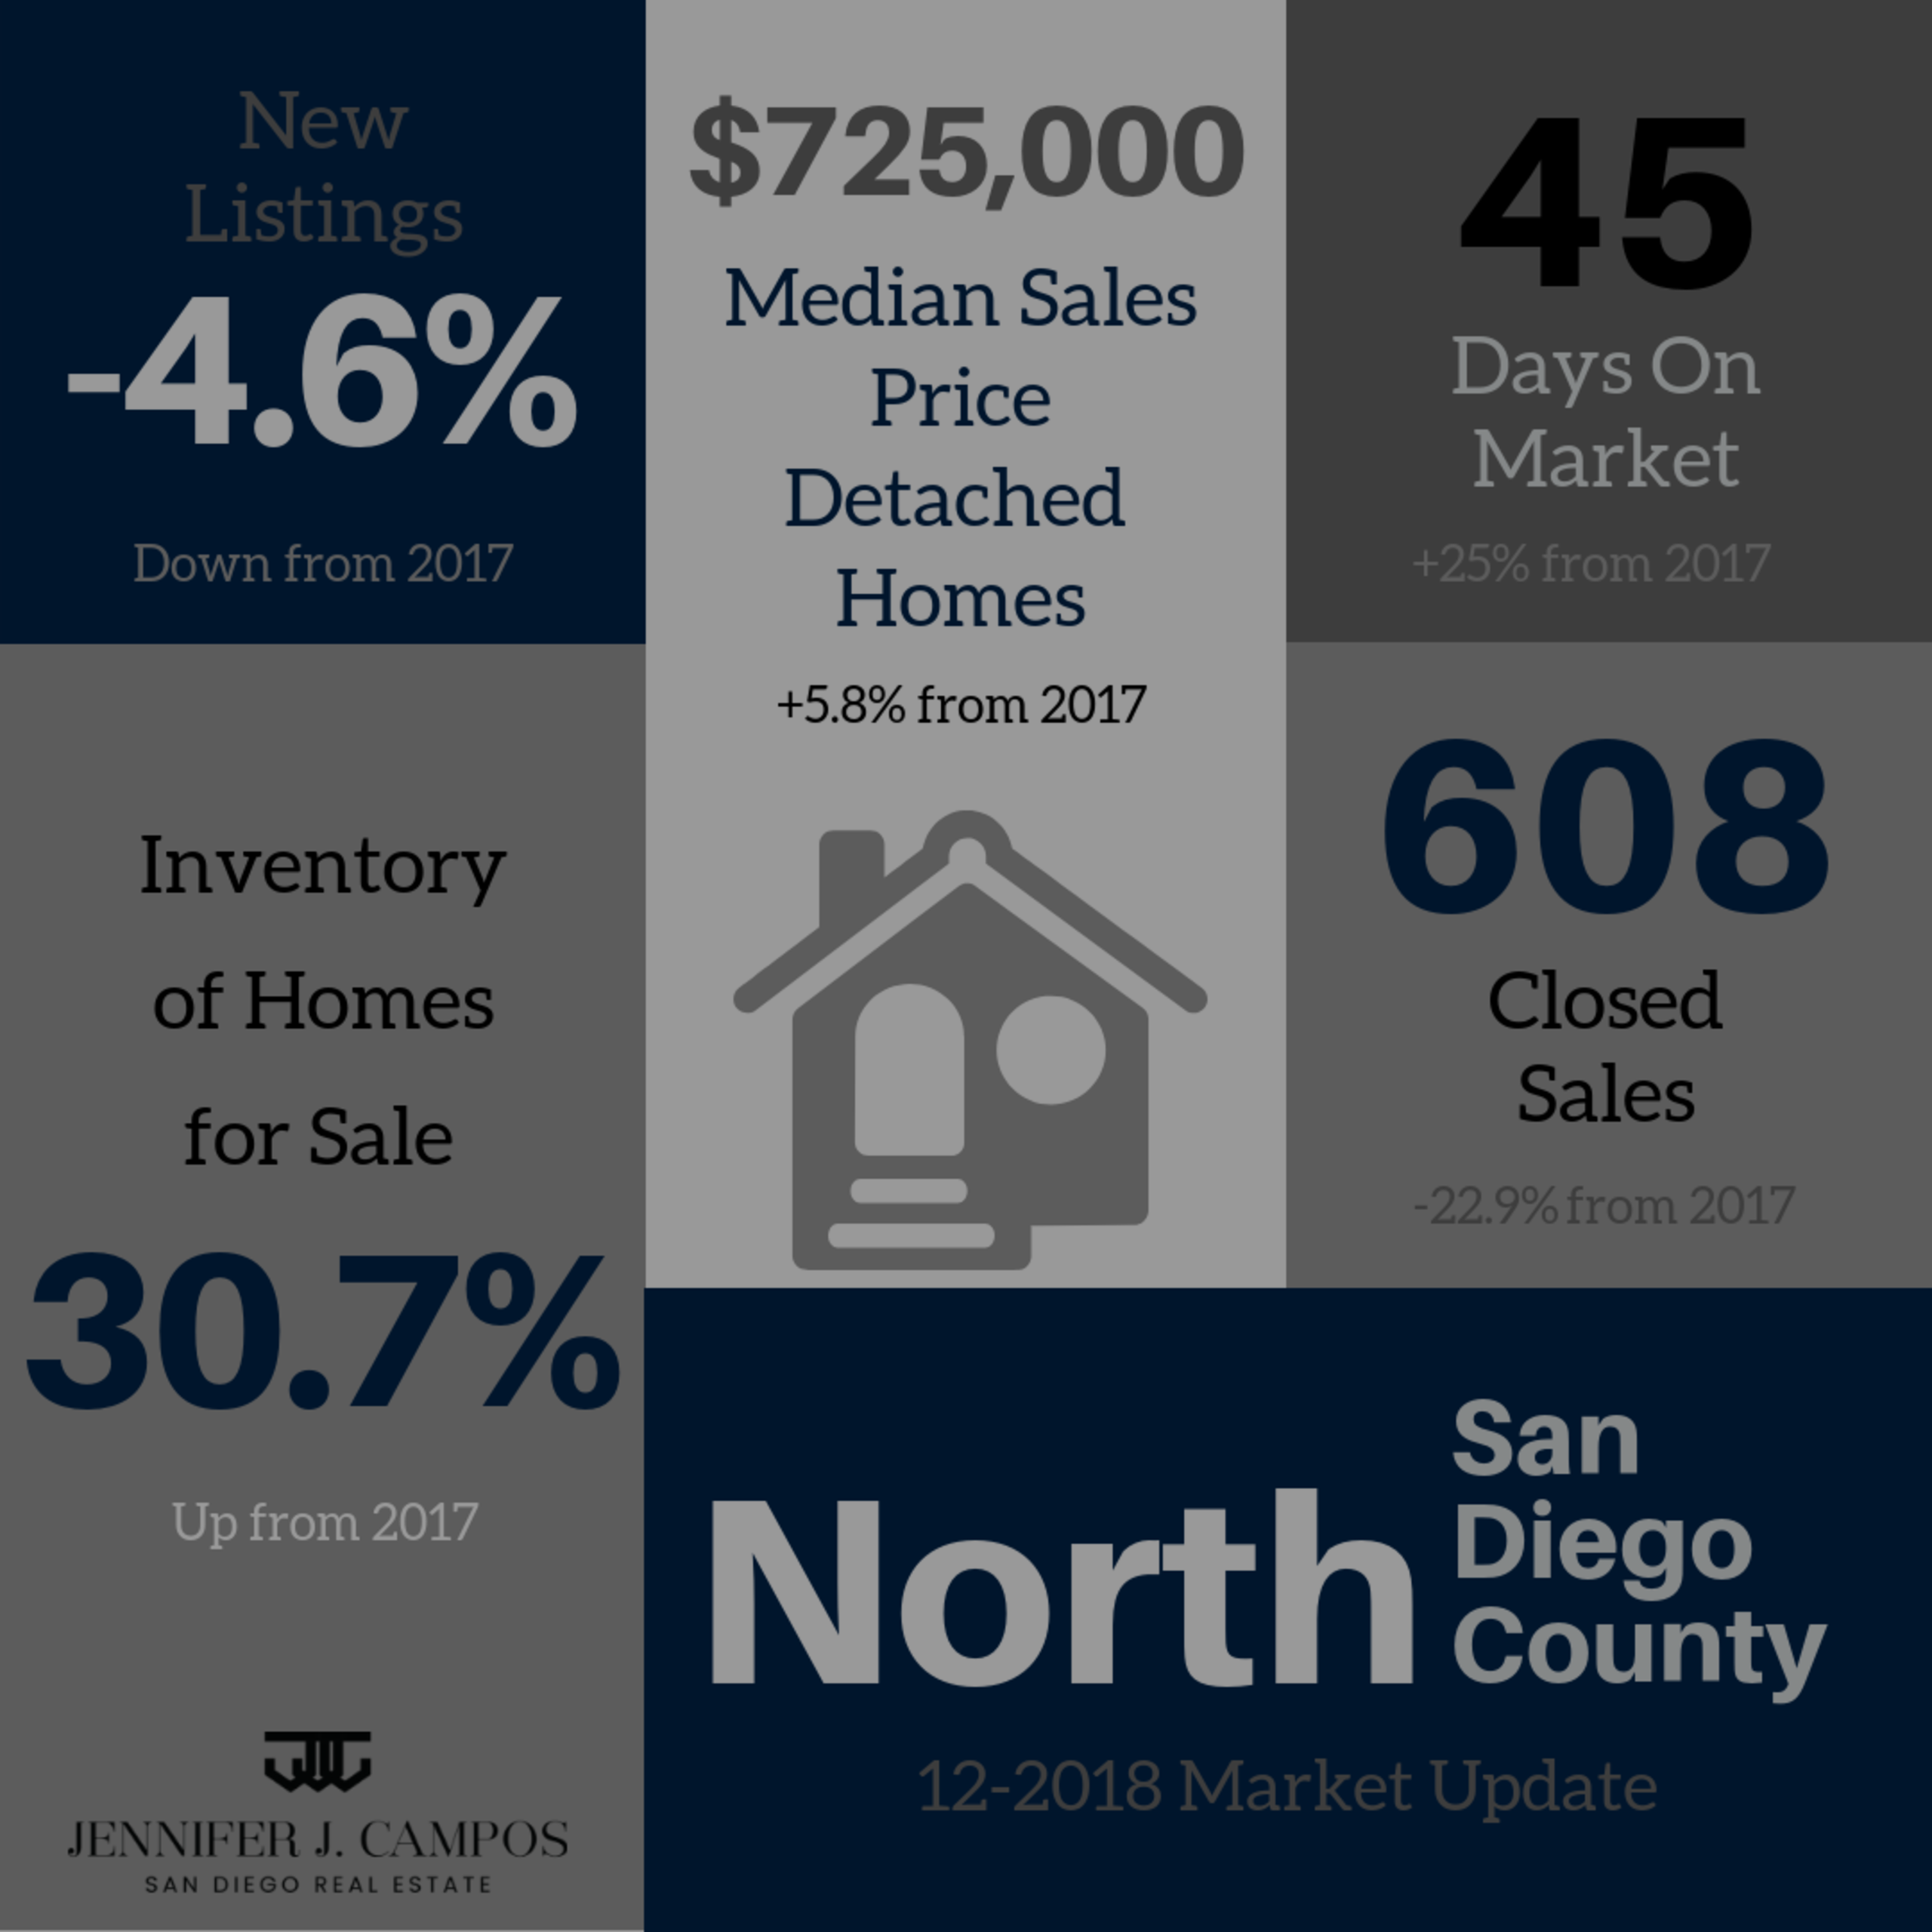 North San Diego County Real Estate Market Update December 2018